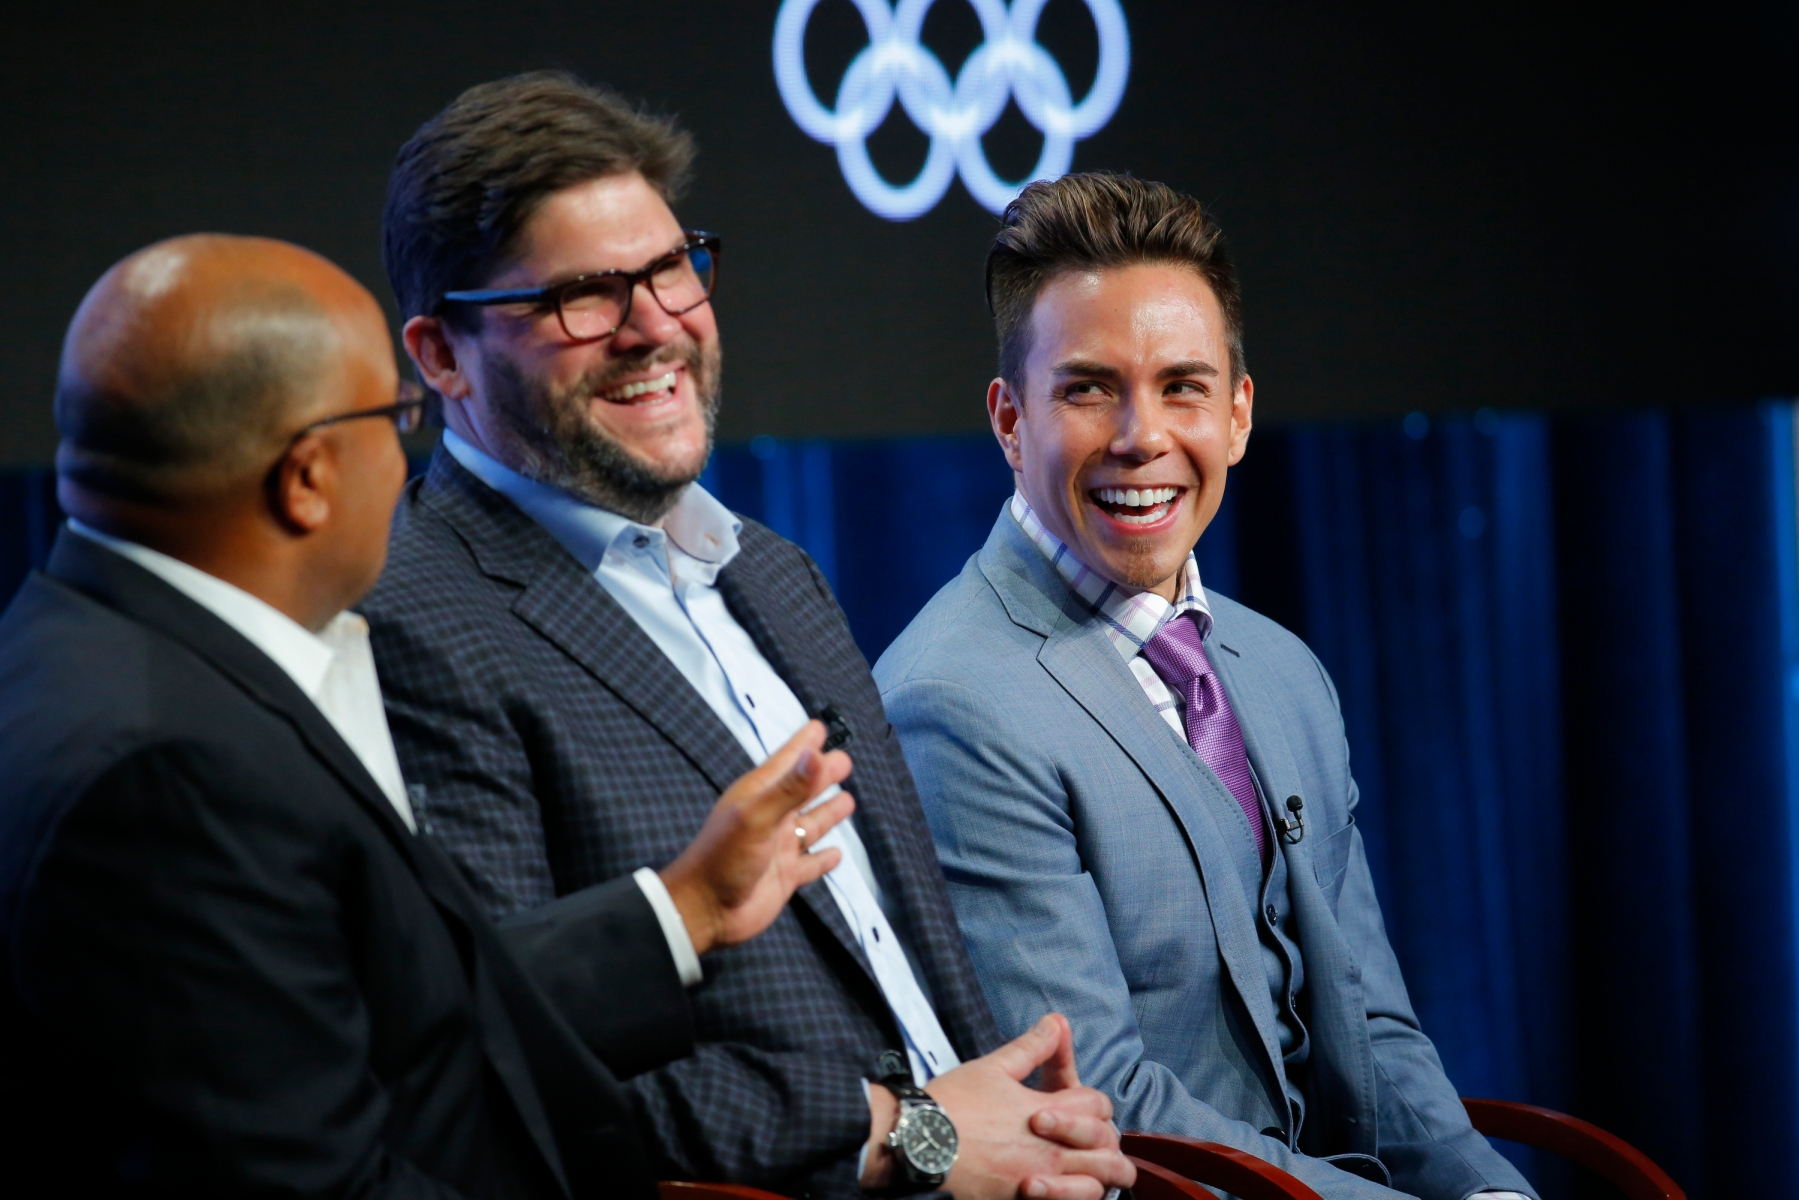 """NBCUNIVERSAL EVENTS -- NBCUniversal Press Tour, August 2017 -- """"The Winter Olympics"""" Session -- Pictured: (l-r) Mike Tirico, Primetime Host, NBC Olympics; Jim Bell, President, NBC Olympics Production & Programming; Apolo Ohno, Short Track Speed Skating Analyst -- (Photo by: Chris Haston/NBC/NBCU Photo Bank via Getty Images)"""